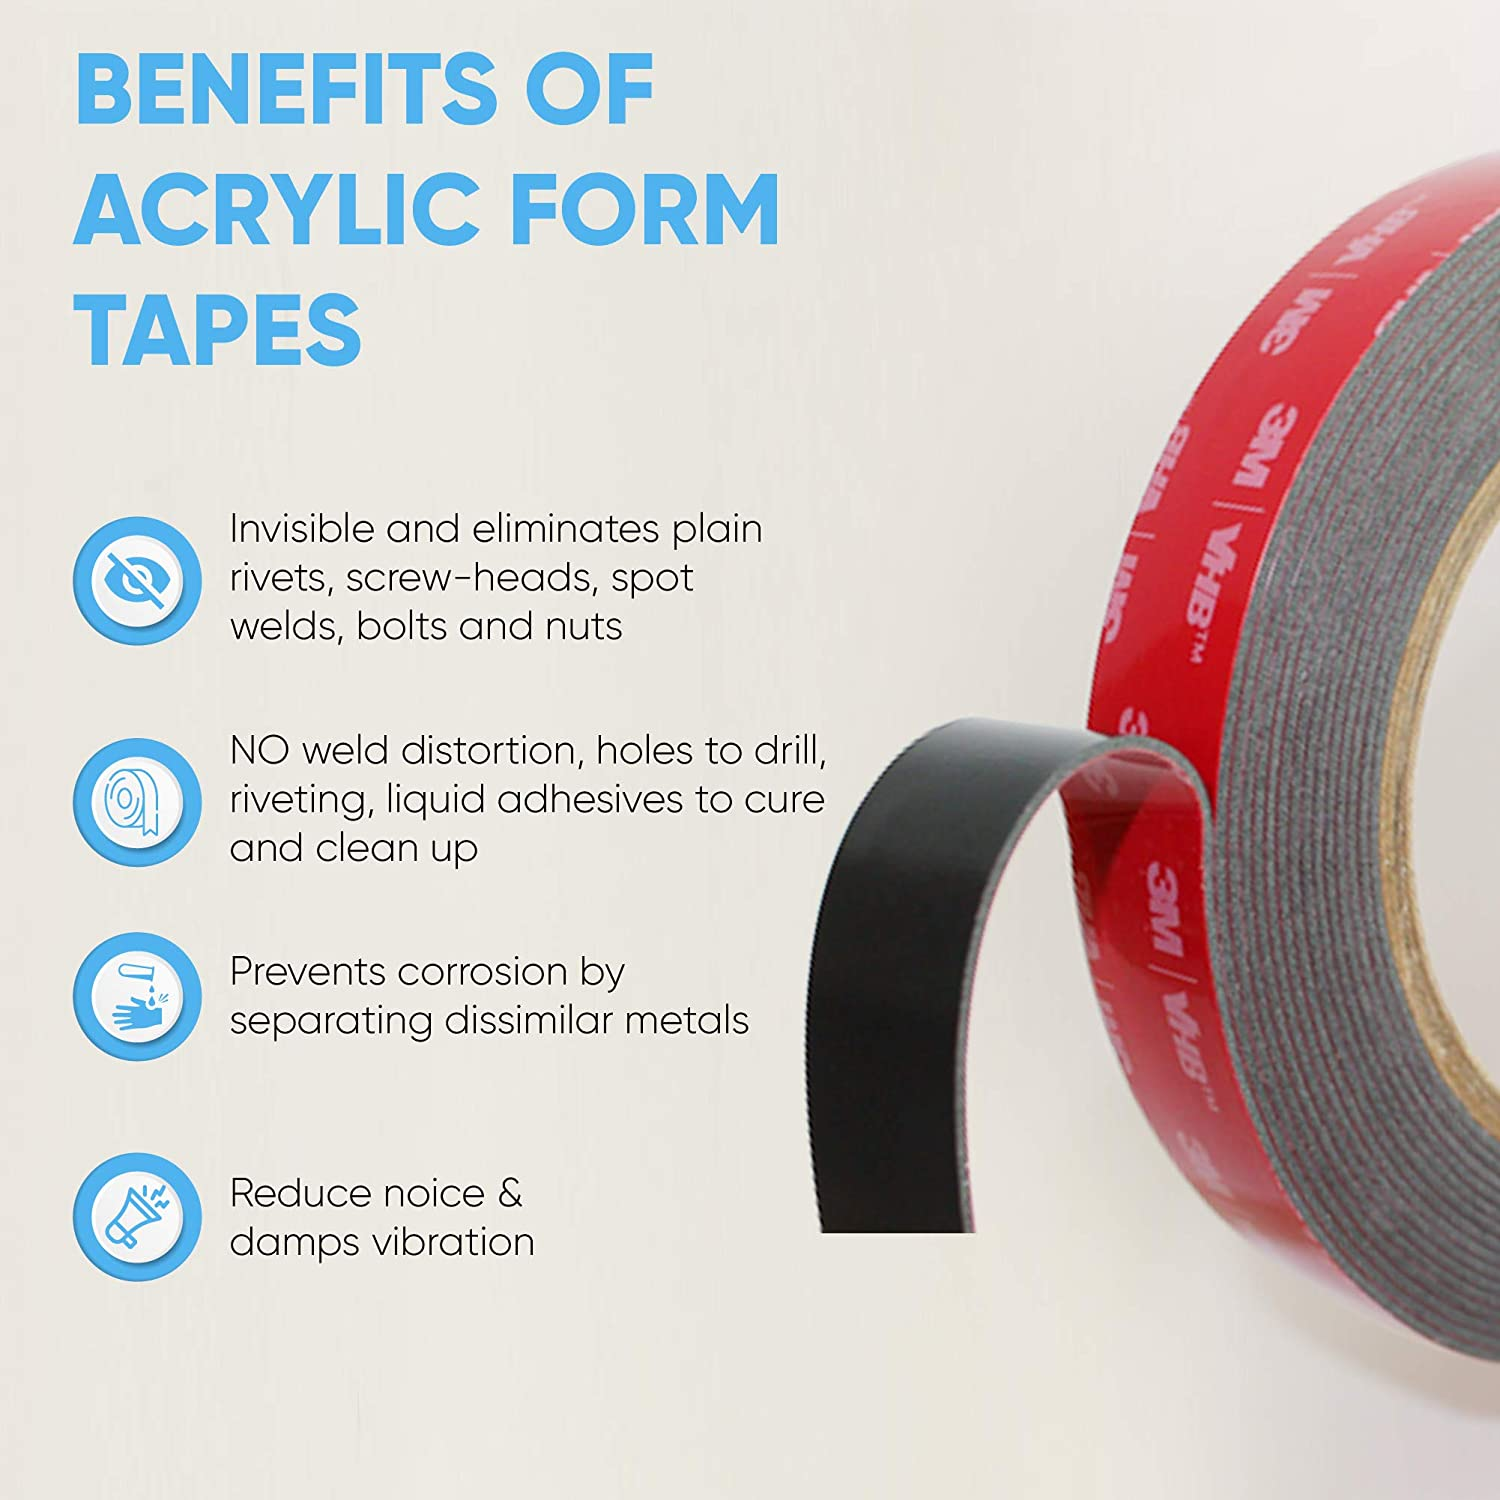 Super Strong Foam Tape for Outdoor and Indoor 3M Double Sided Tape 0.25in x 15ft HPP Heavy Duty Mounting Tape Converted from 3M VHB 5952,